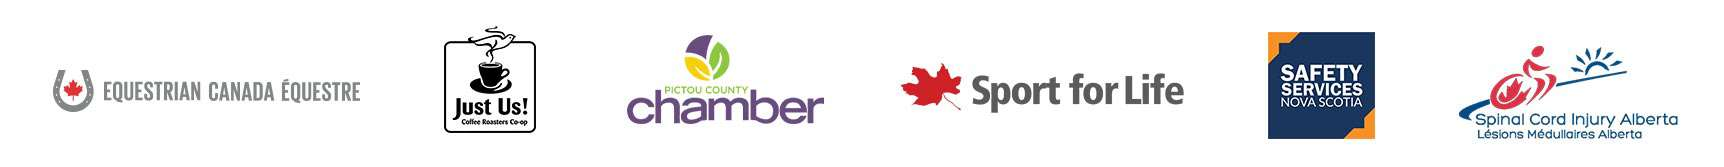 Logos of Equestrian canada, Hust Us! Coffer, Pictou County Chamber, Sport for Life, Safety Services Nova Scotia, Spinal Cord Injury Alberta